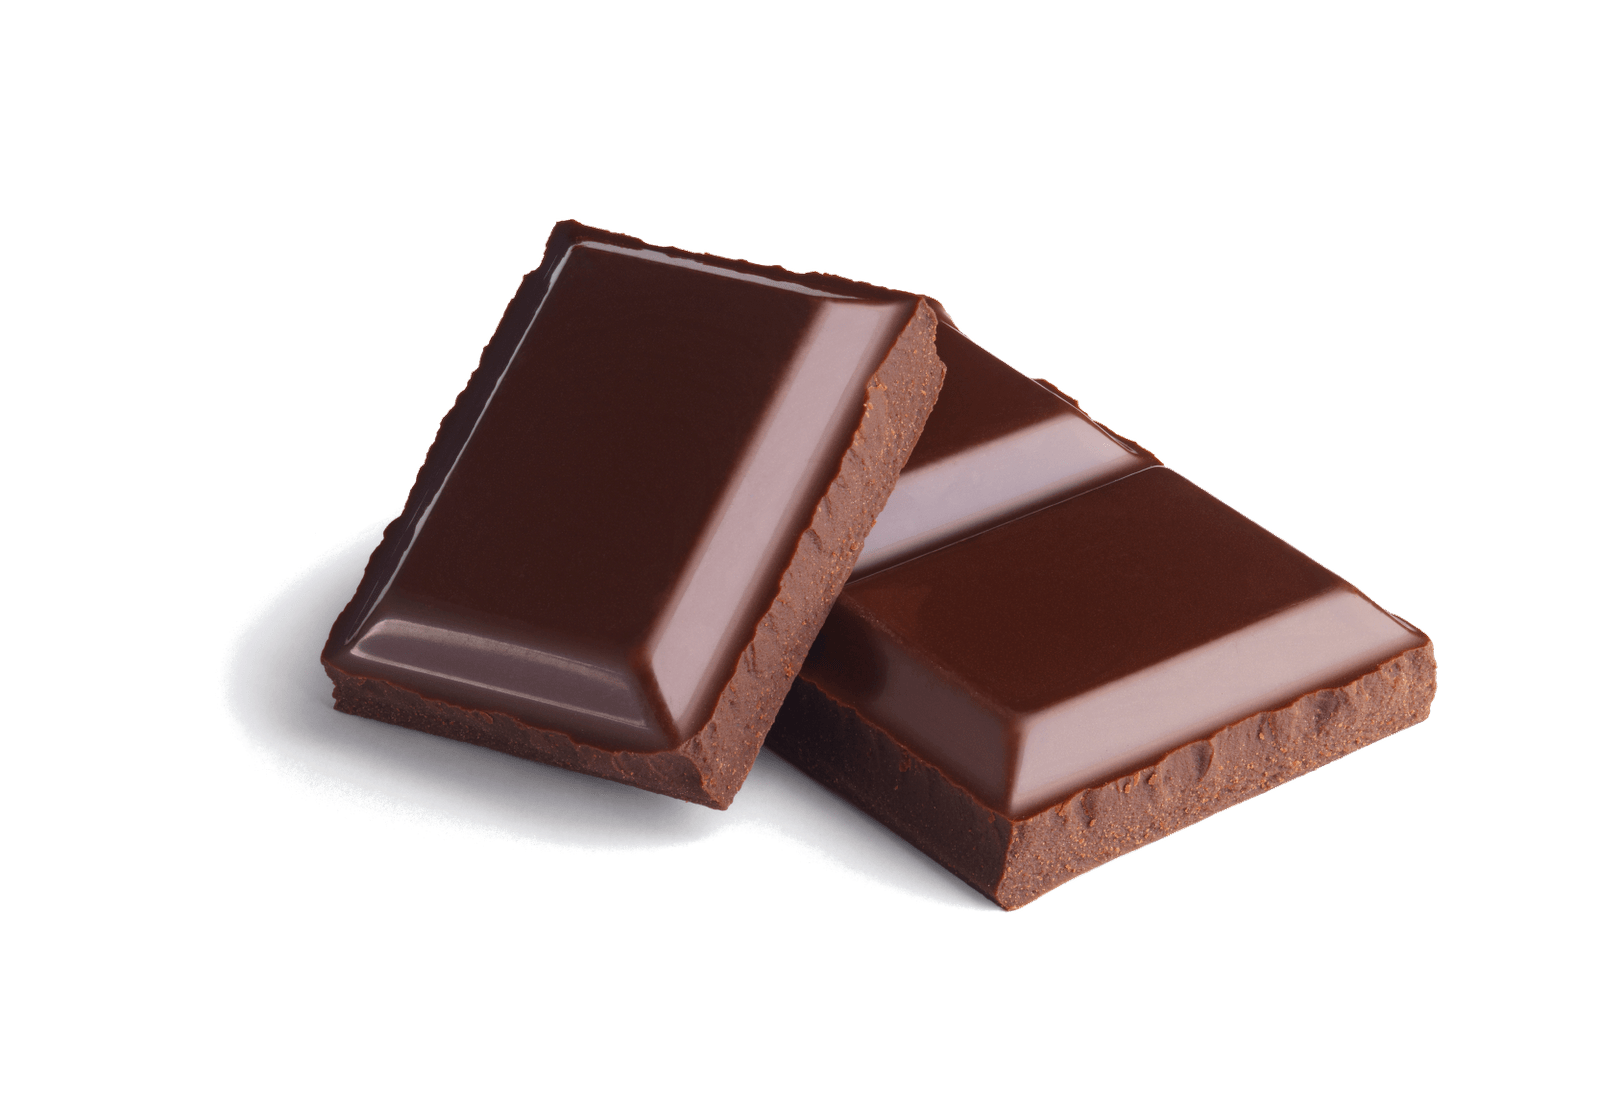 Chocolate png. Pieces transparent stickpng